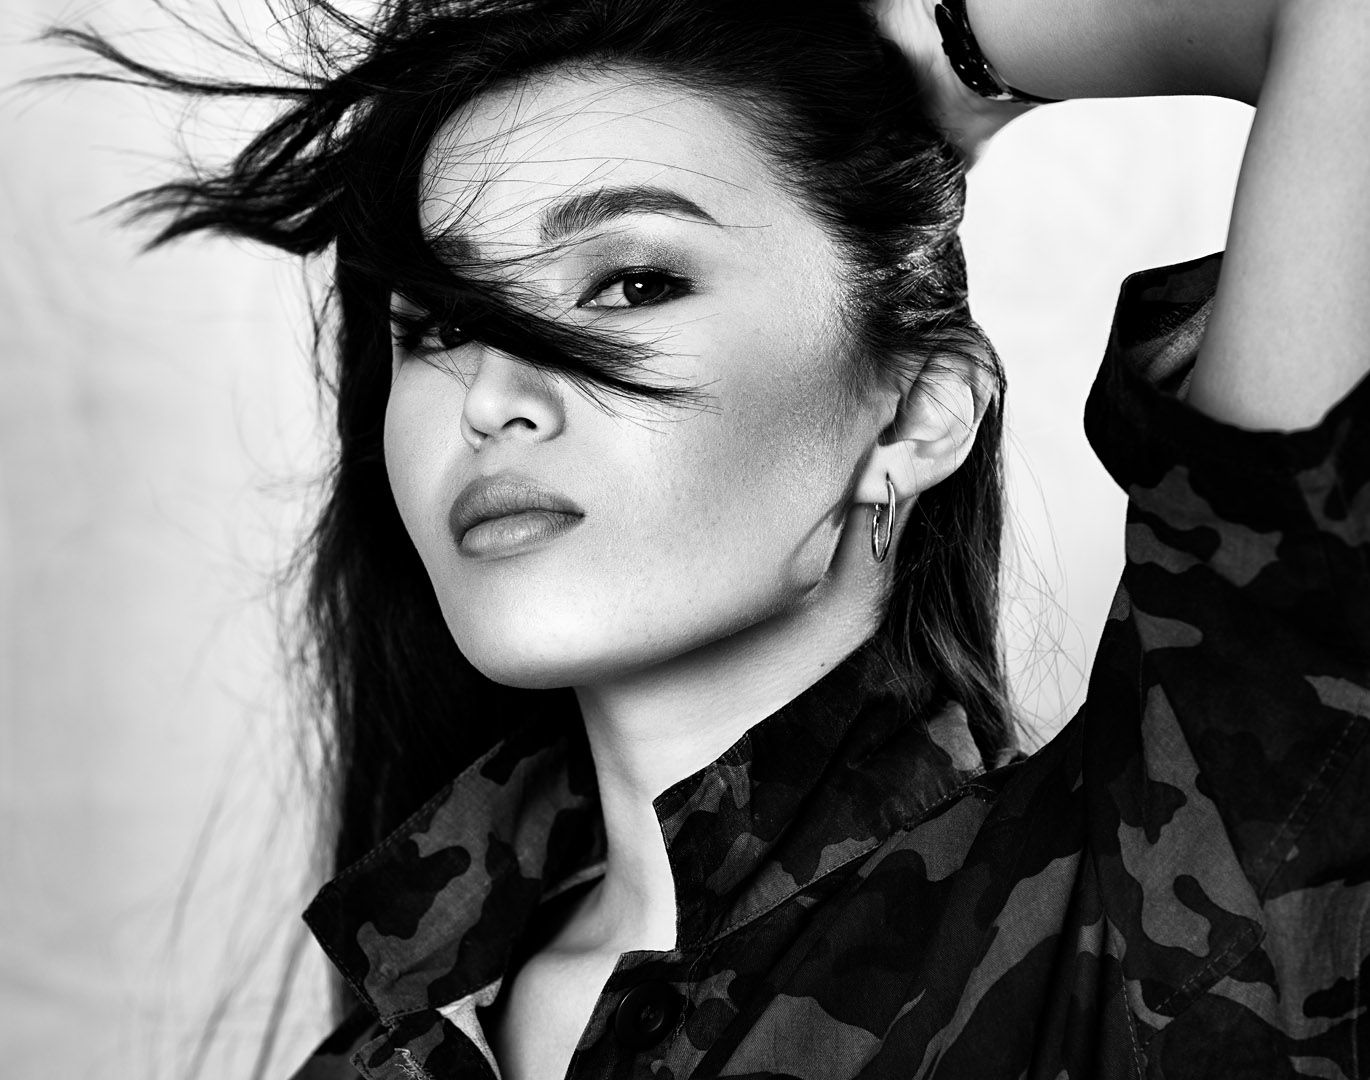 Model wearing an army jump suit for this fashion black and white image